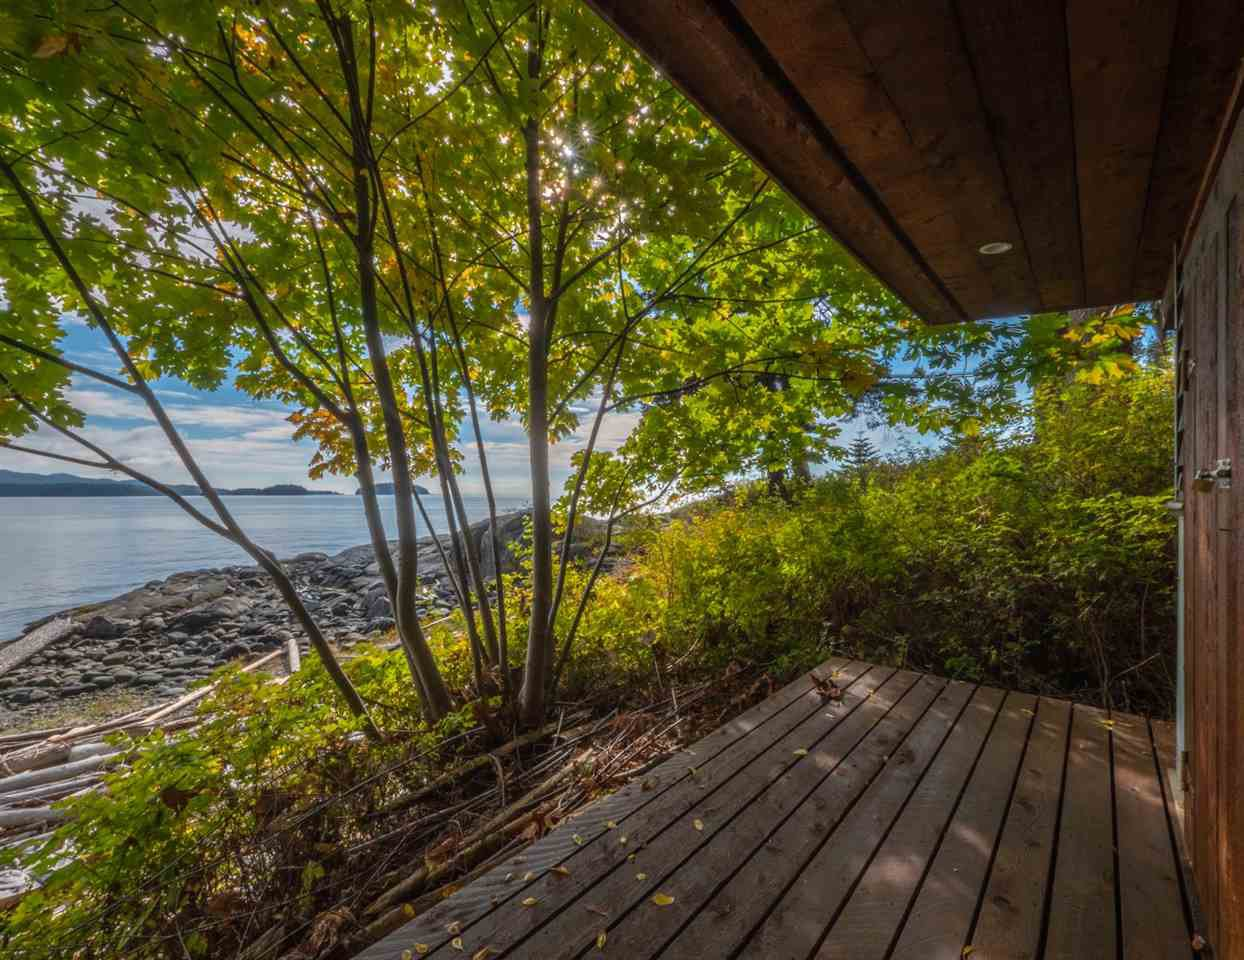 Photo 19: Photos: 877 GOWER POINT Road in Gibsons: Gibsons & Area House for sale (Sunshine Coast)  : MLS®# R2419918